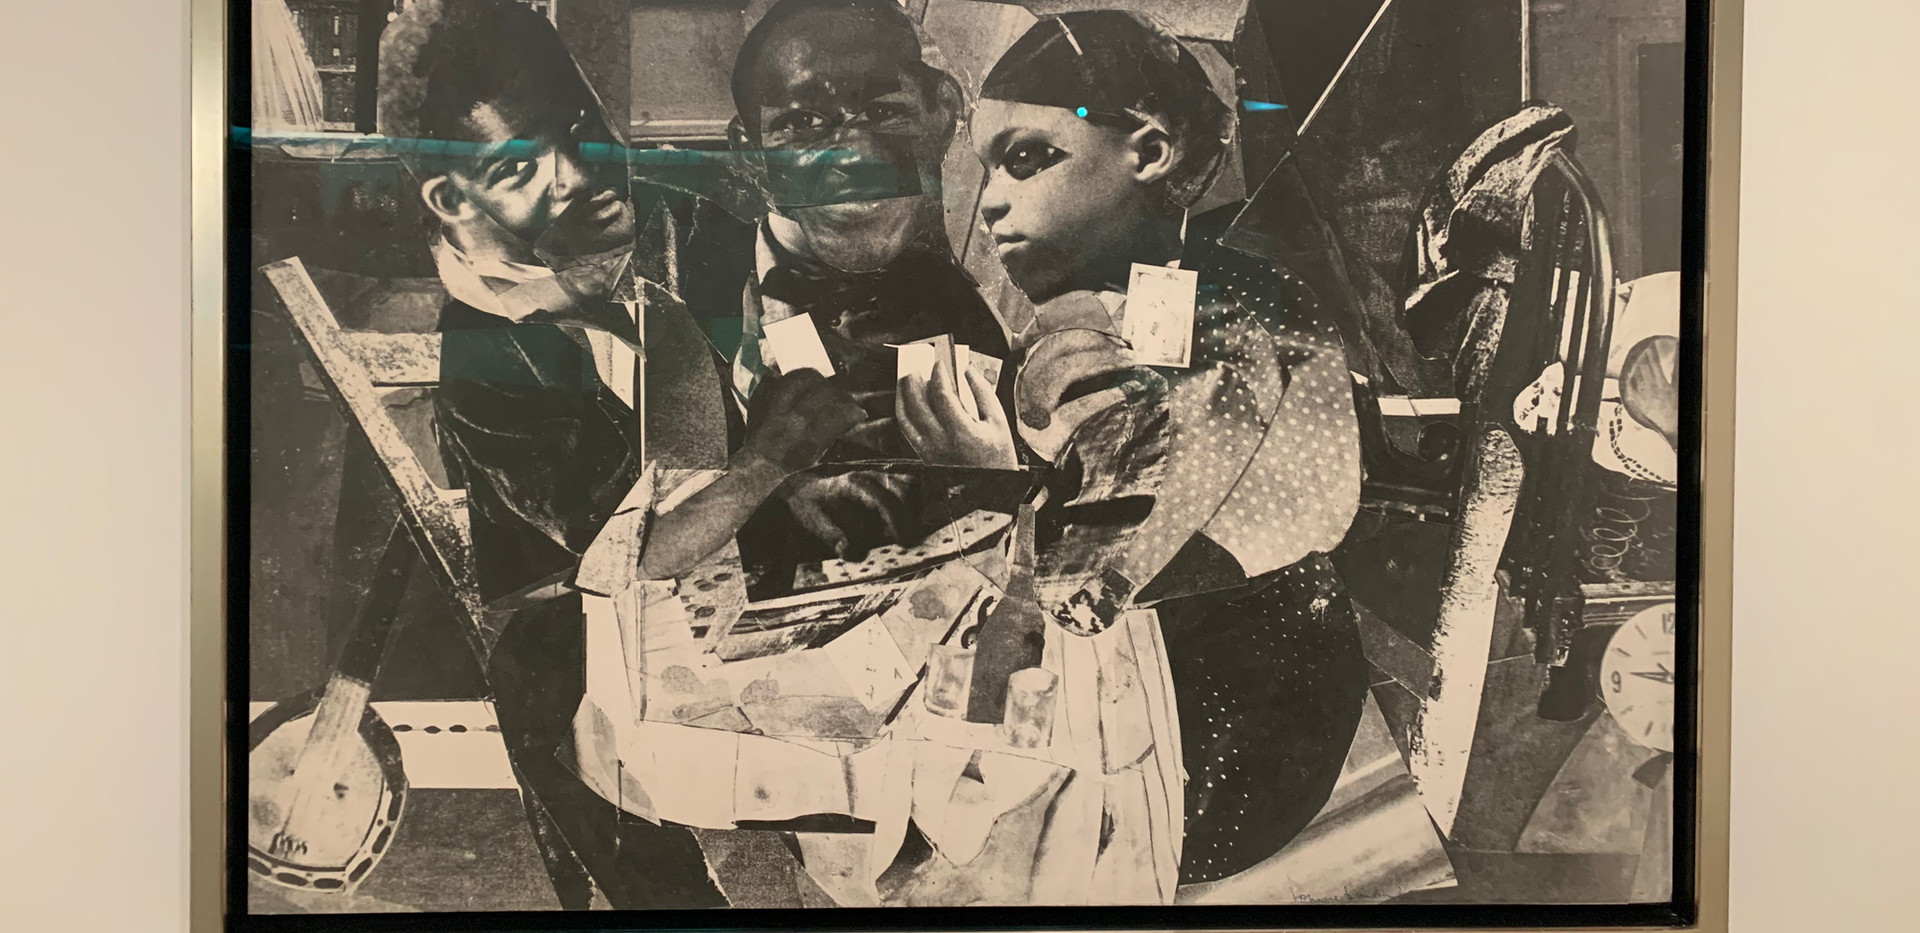 Romare Bearden, Evening 9:10, 461 Lenox Ave, 1964